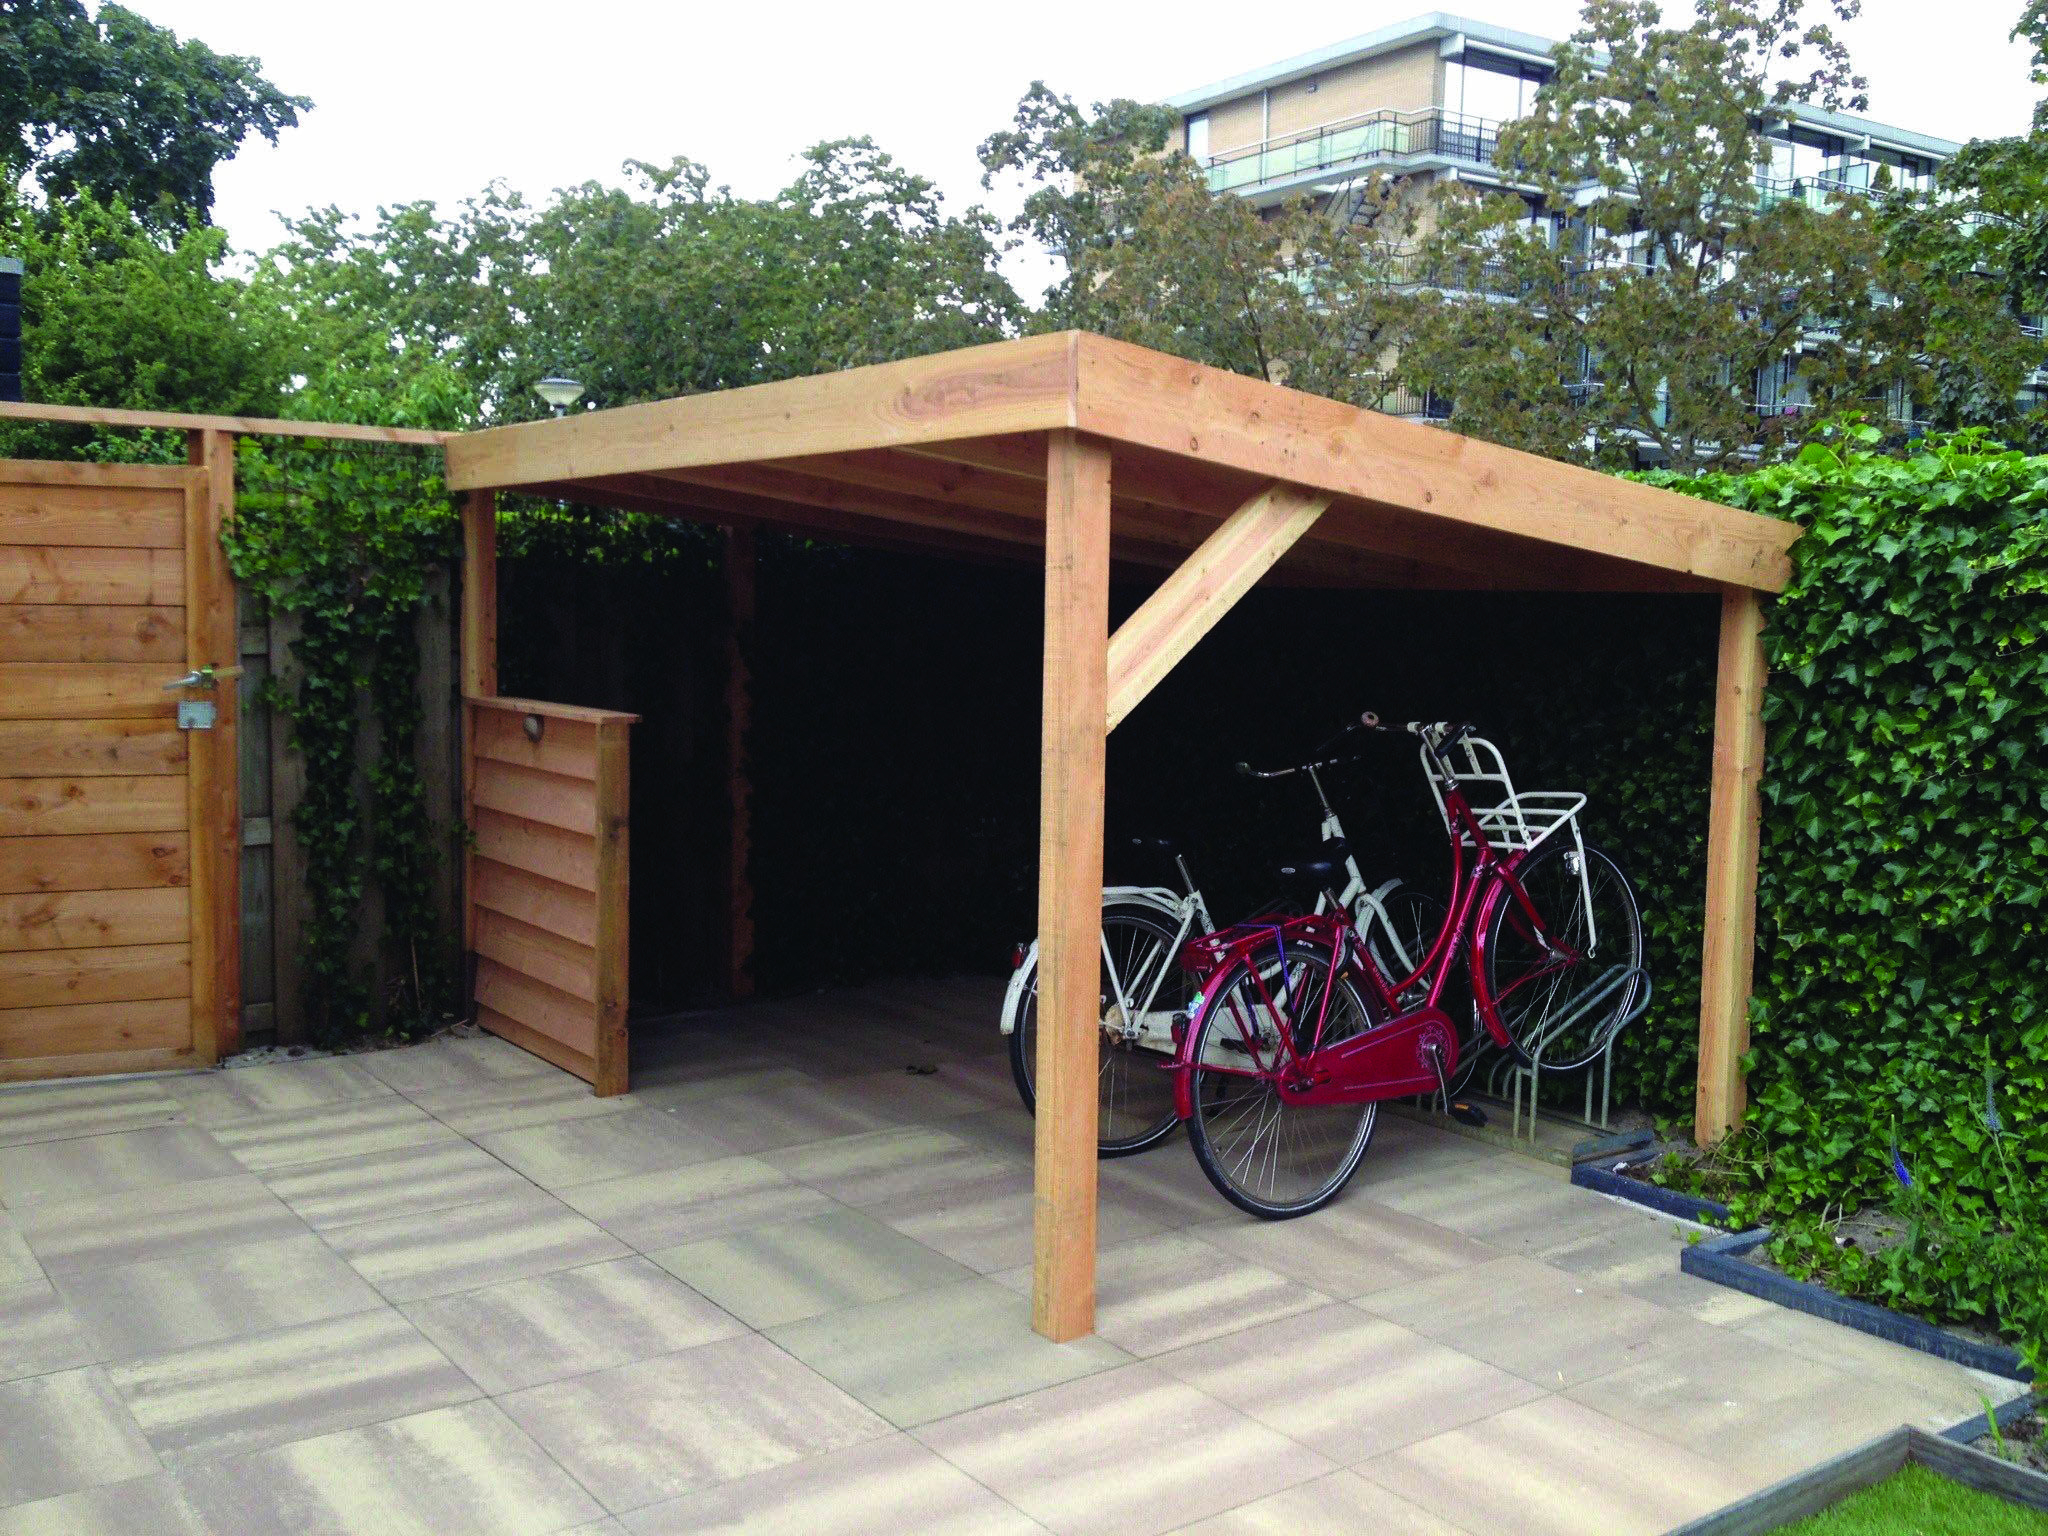 Get These Top Trending How To Build Outdoor Bike Storage To ... destiné Abri Moto Jardin